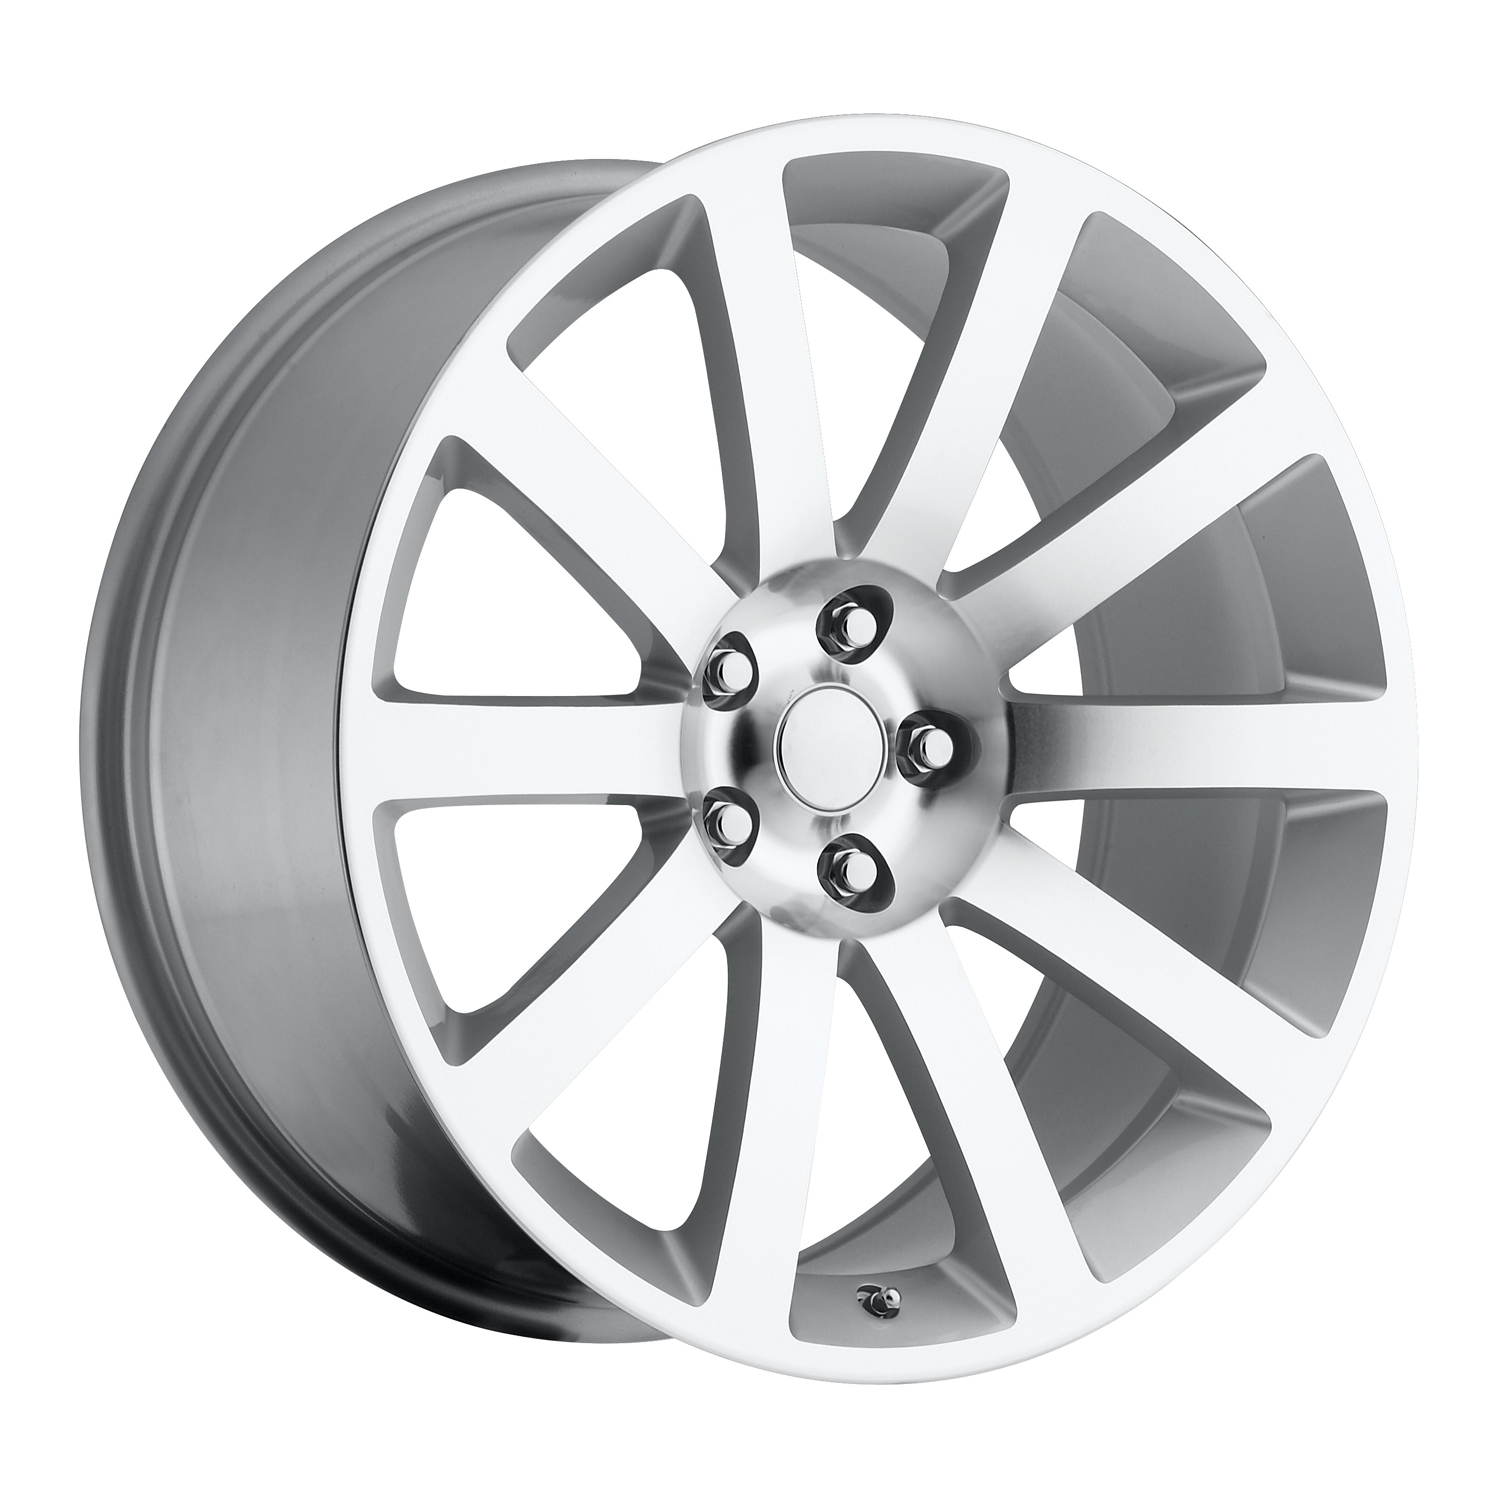 Chrysler 300C 2005-2010 22x9 5x115 +18 - SRT8 Style Wheel - Silver Machine Face With Cap